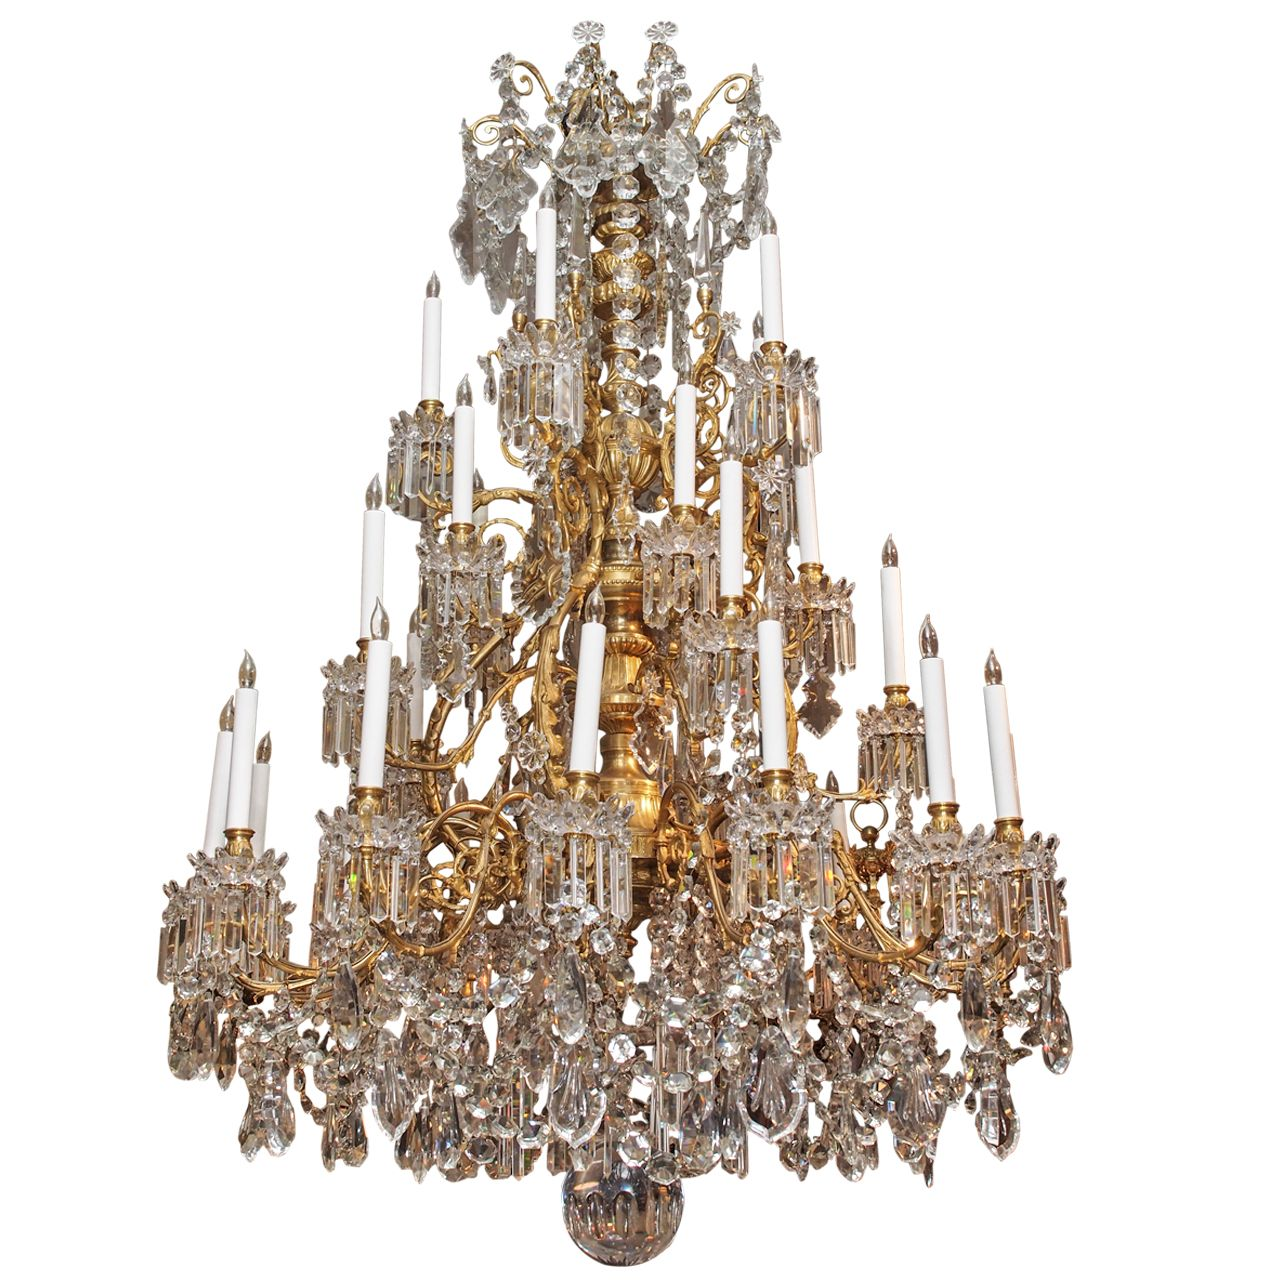 1stdibs.com | Magnificent Antique French Baccarat Crystal Chandelier circa  1850-1870 - 1stdibs.com Magnificent Antique French Baccarat Crystal Chandelier